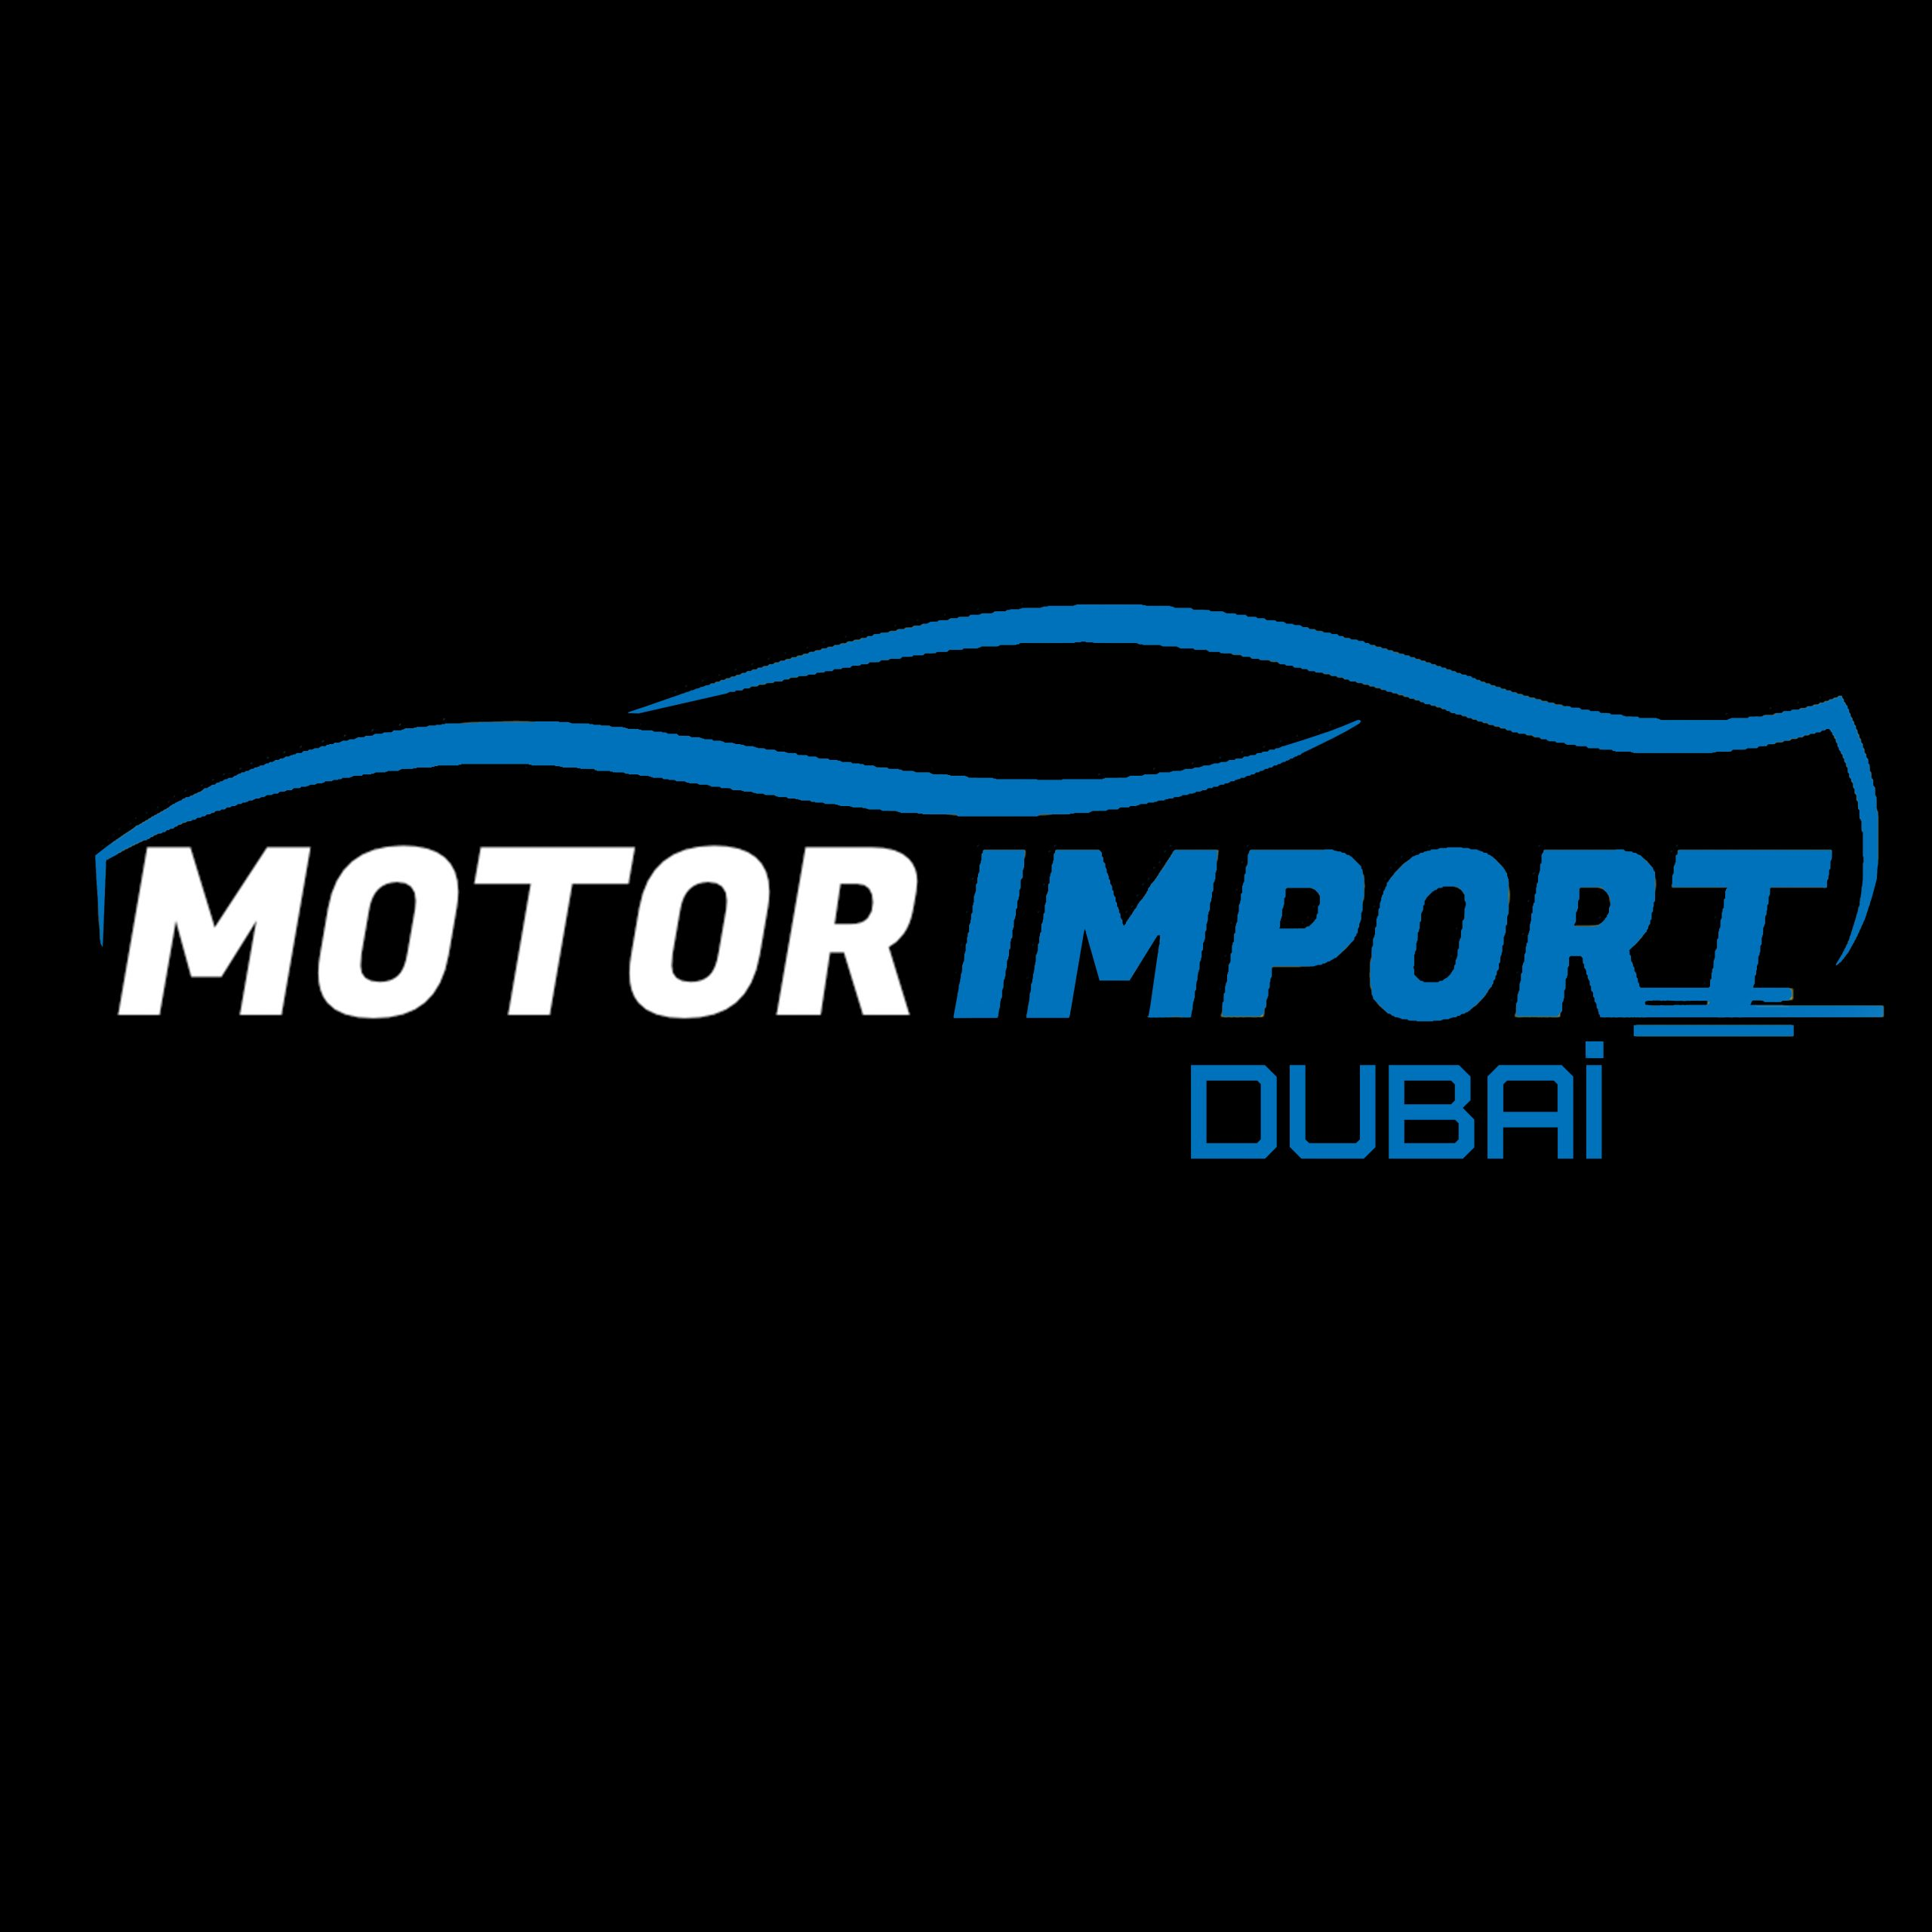 SQUARE EMPTYMOTOR IMPORT DUBAI scaled - GMC DUBAI importation voiture Dubai GMC importation vehicule emirats arabe unis motorimport